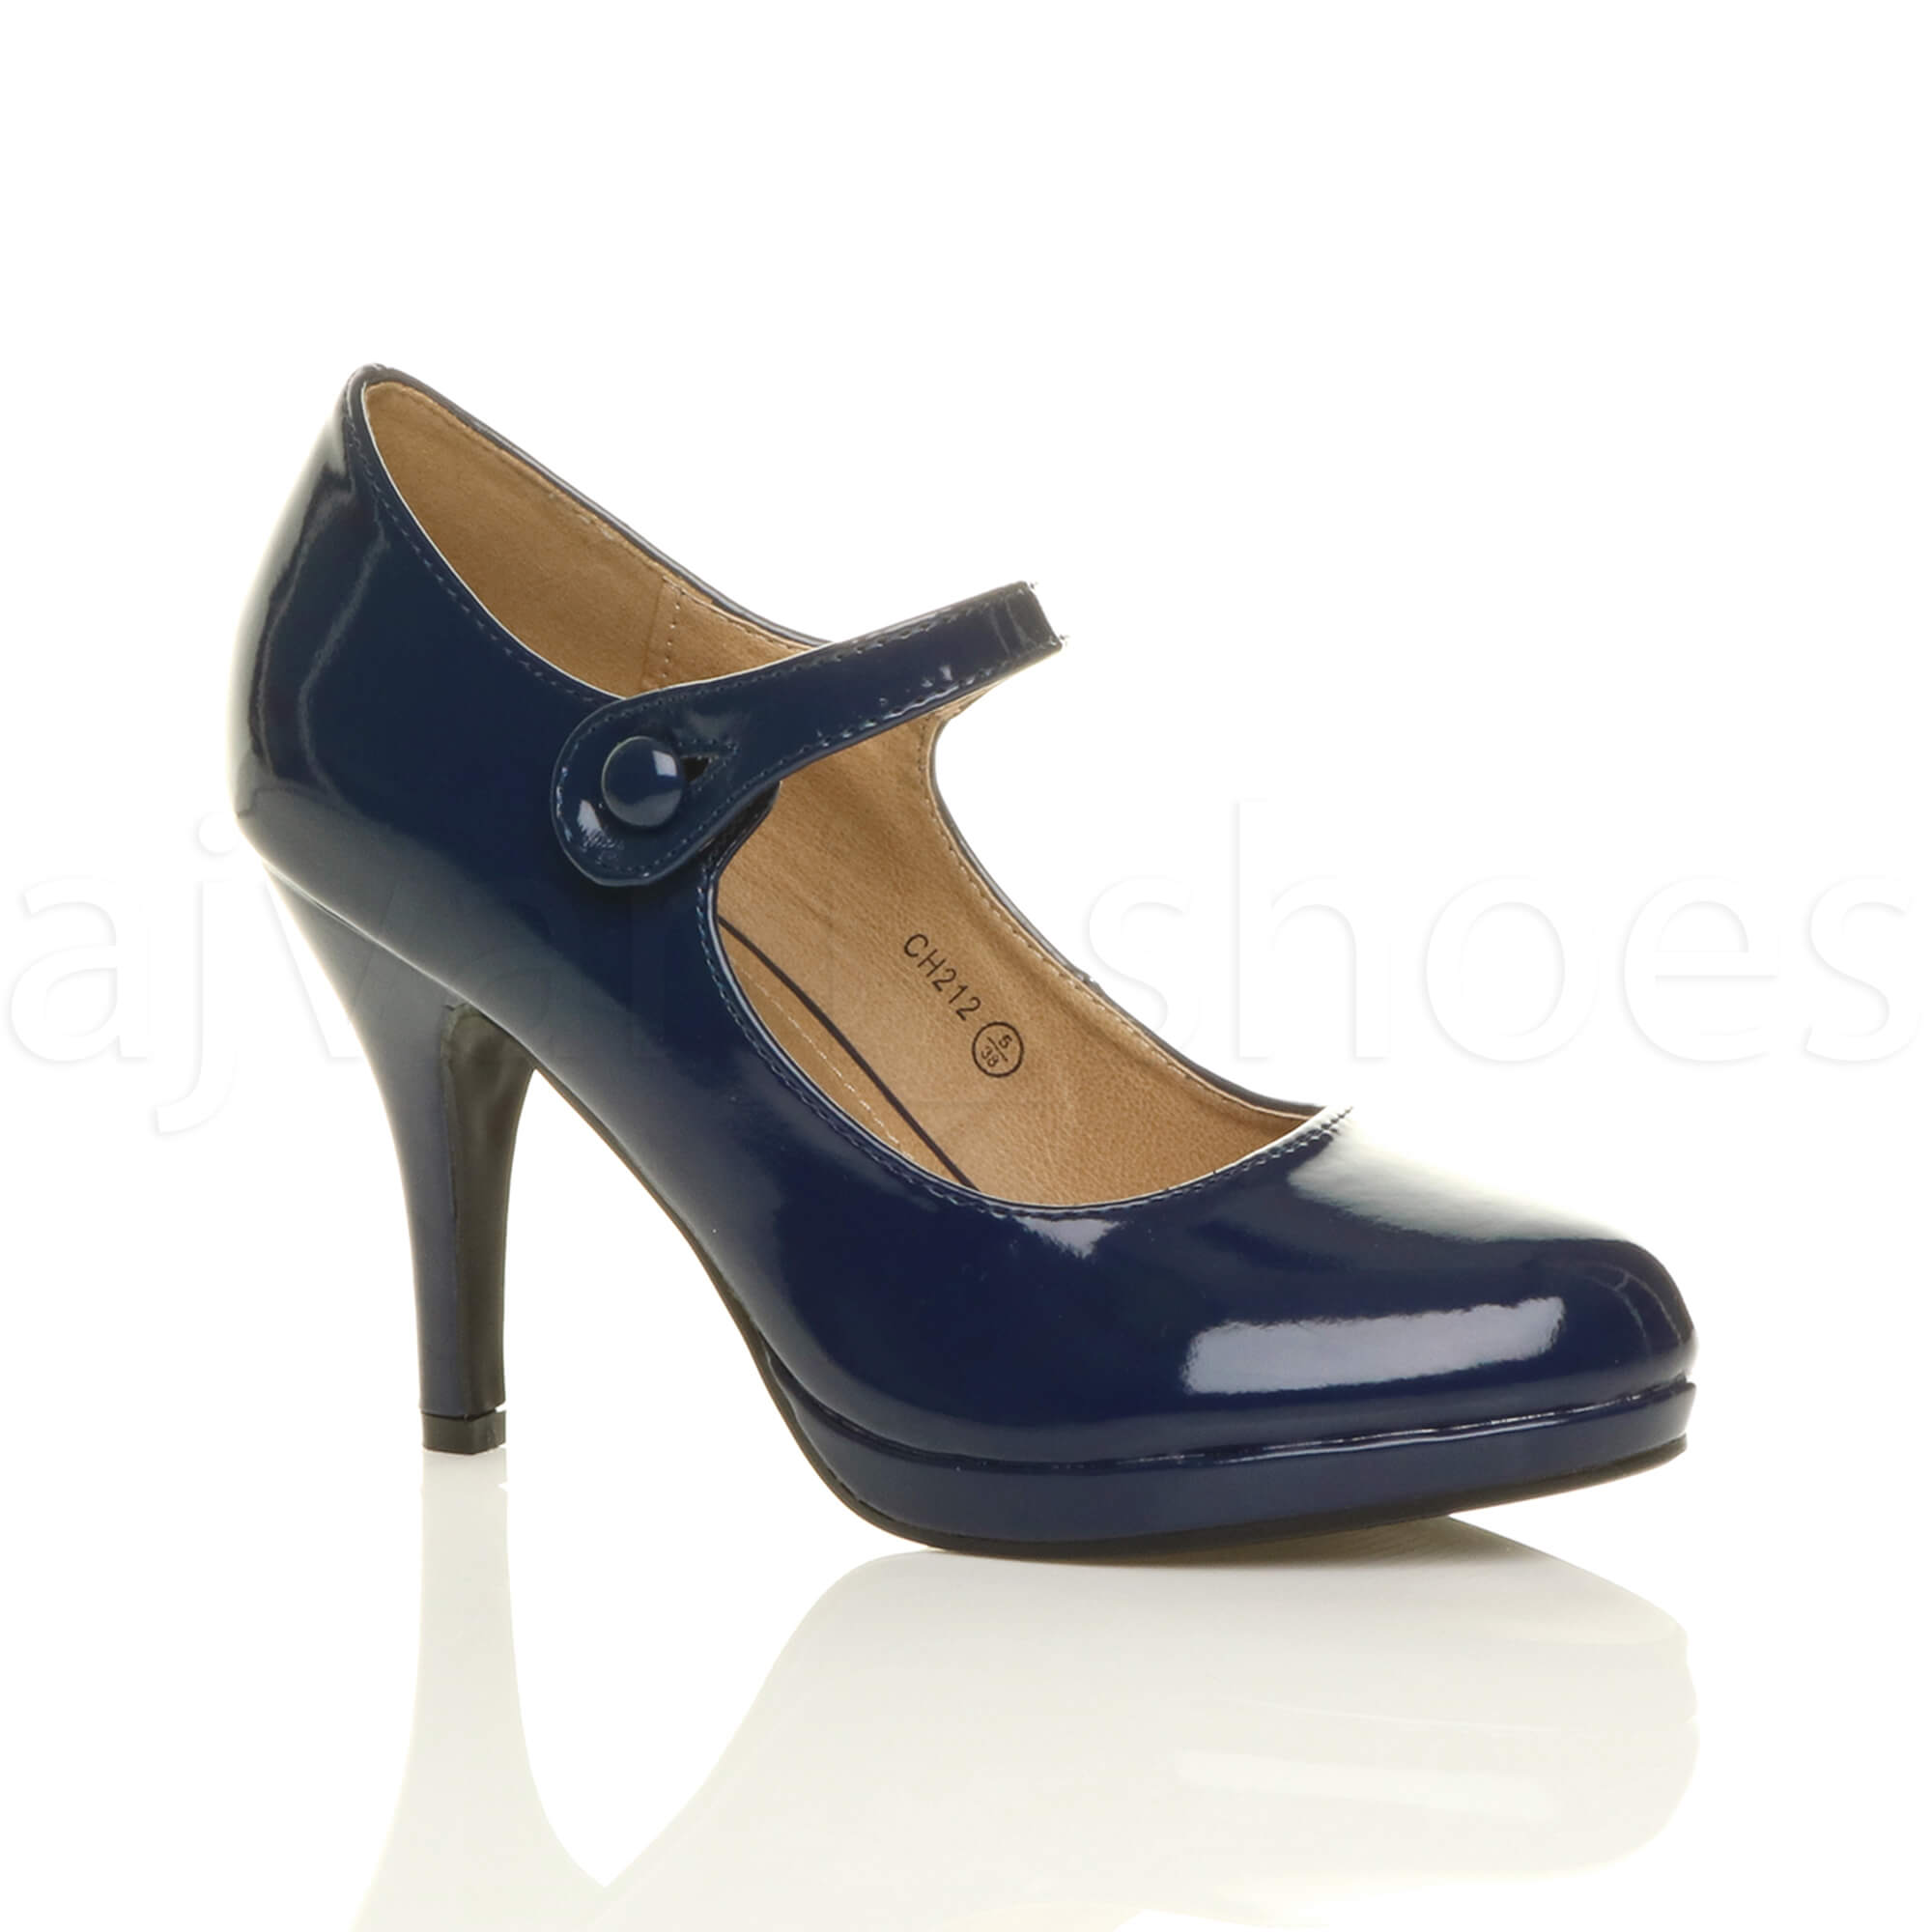 Shop for cheap Women's Shoes? We have great Women's Shoes on sale. Buy cheap Women's Shoes online at grounwhijwgg.cf today!